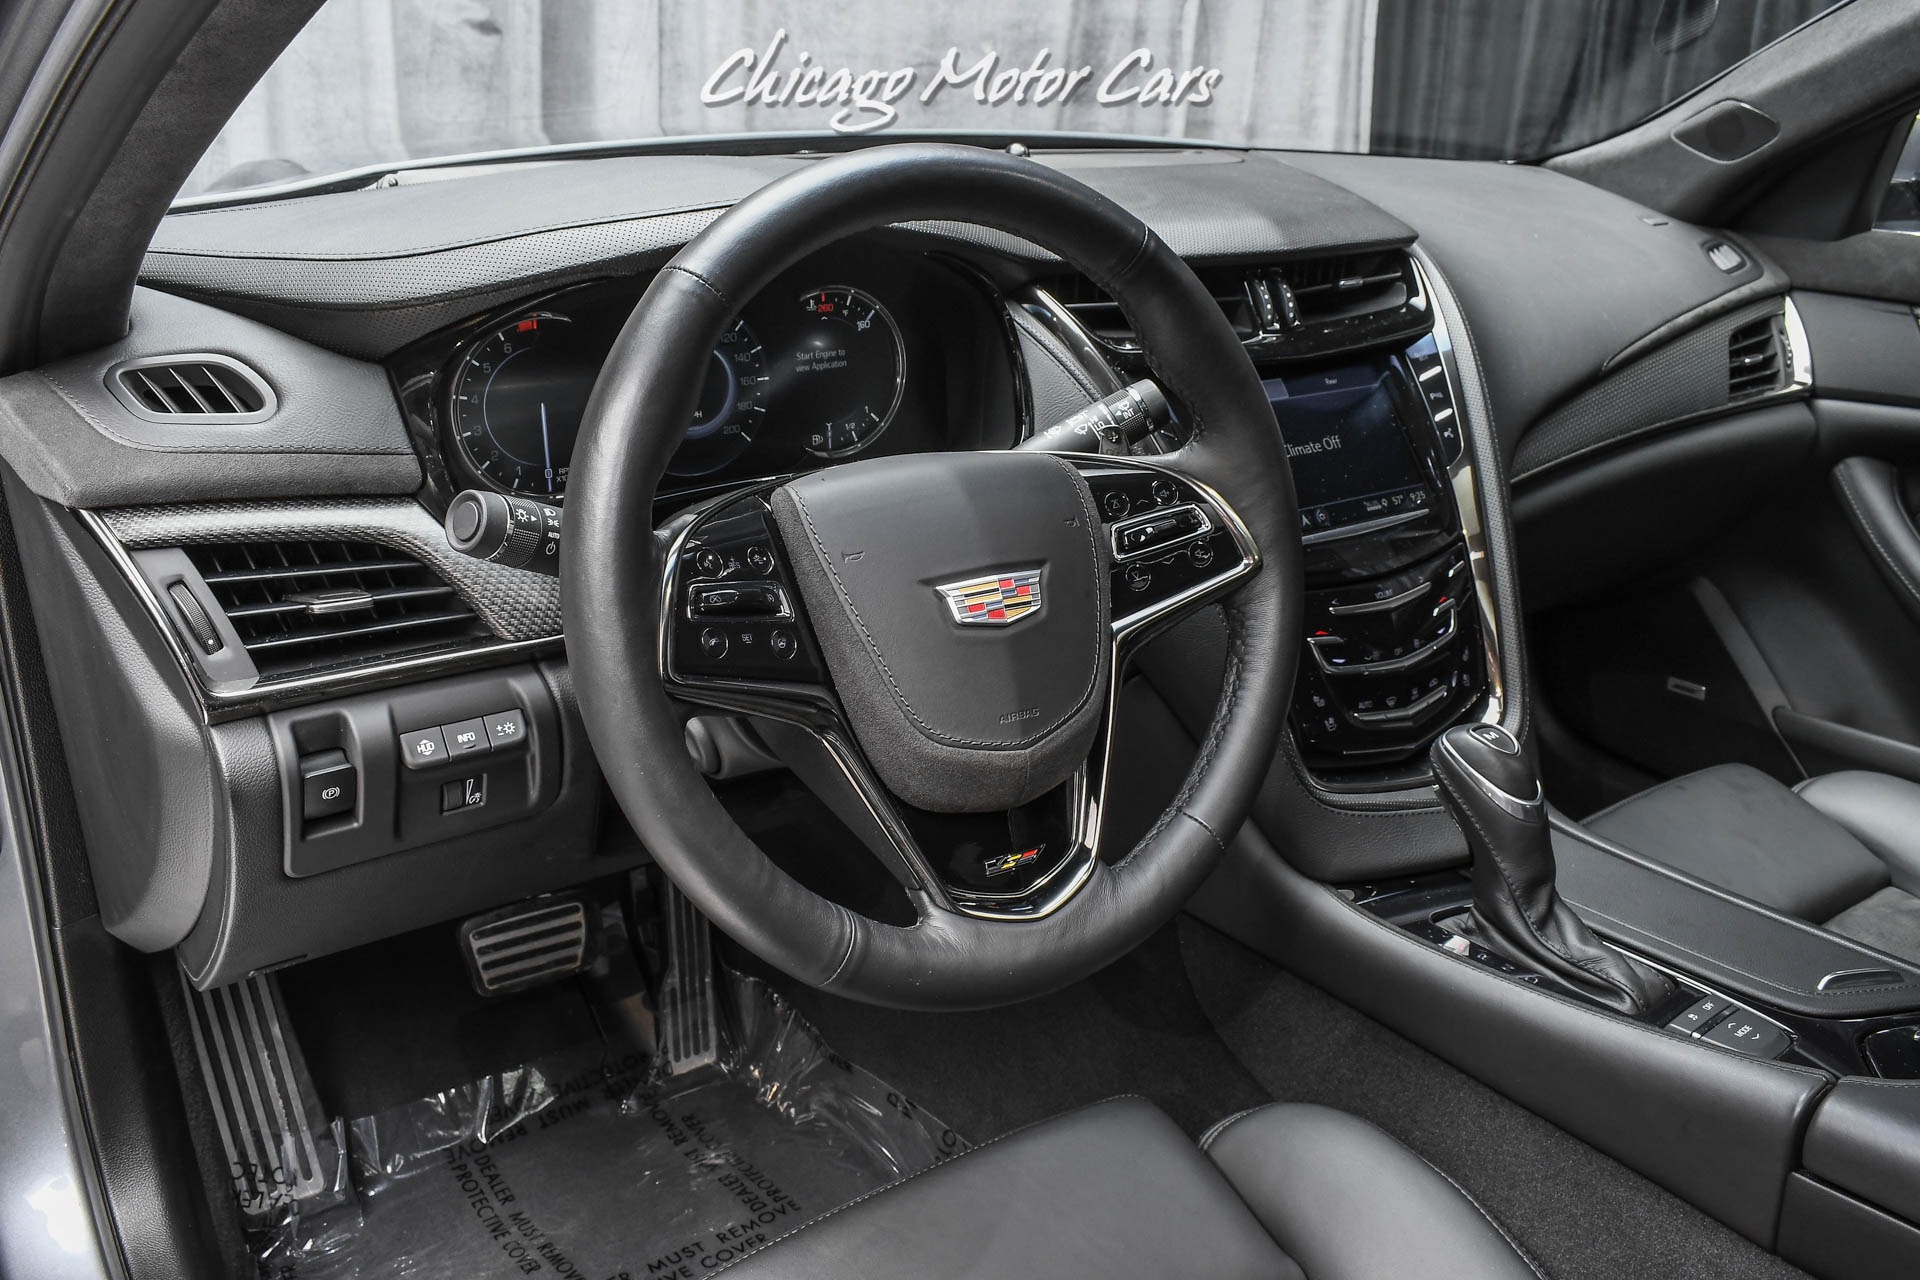 Used-2019-Cadillac-CTS-V-Sedan-CARBON-FIBER-PACKAGE-LUXURY-PACKAGE-ULTRAVIEW-SUNROOF